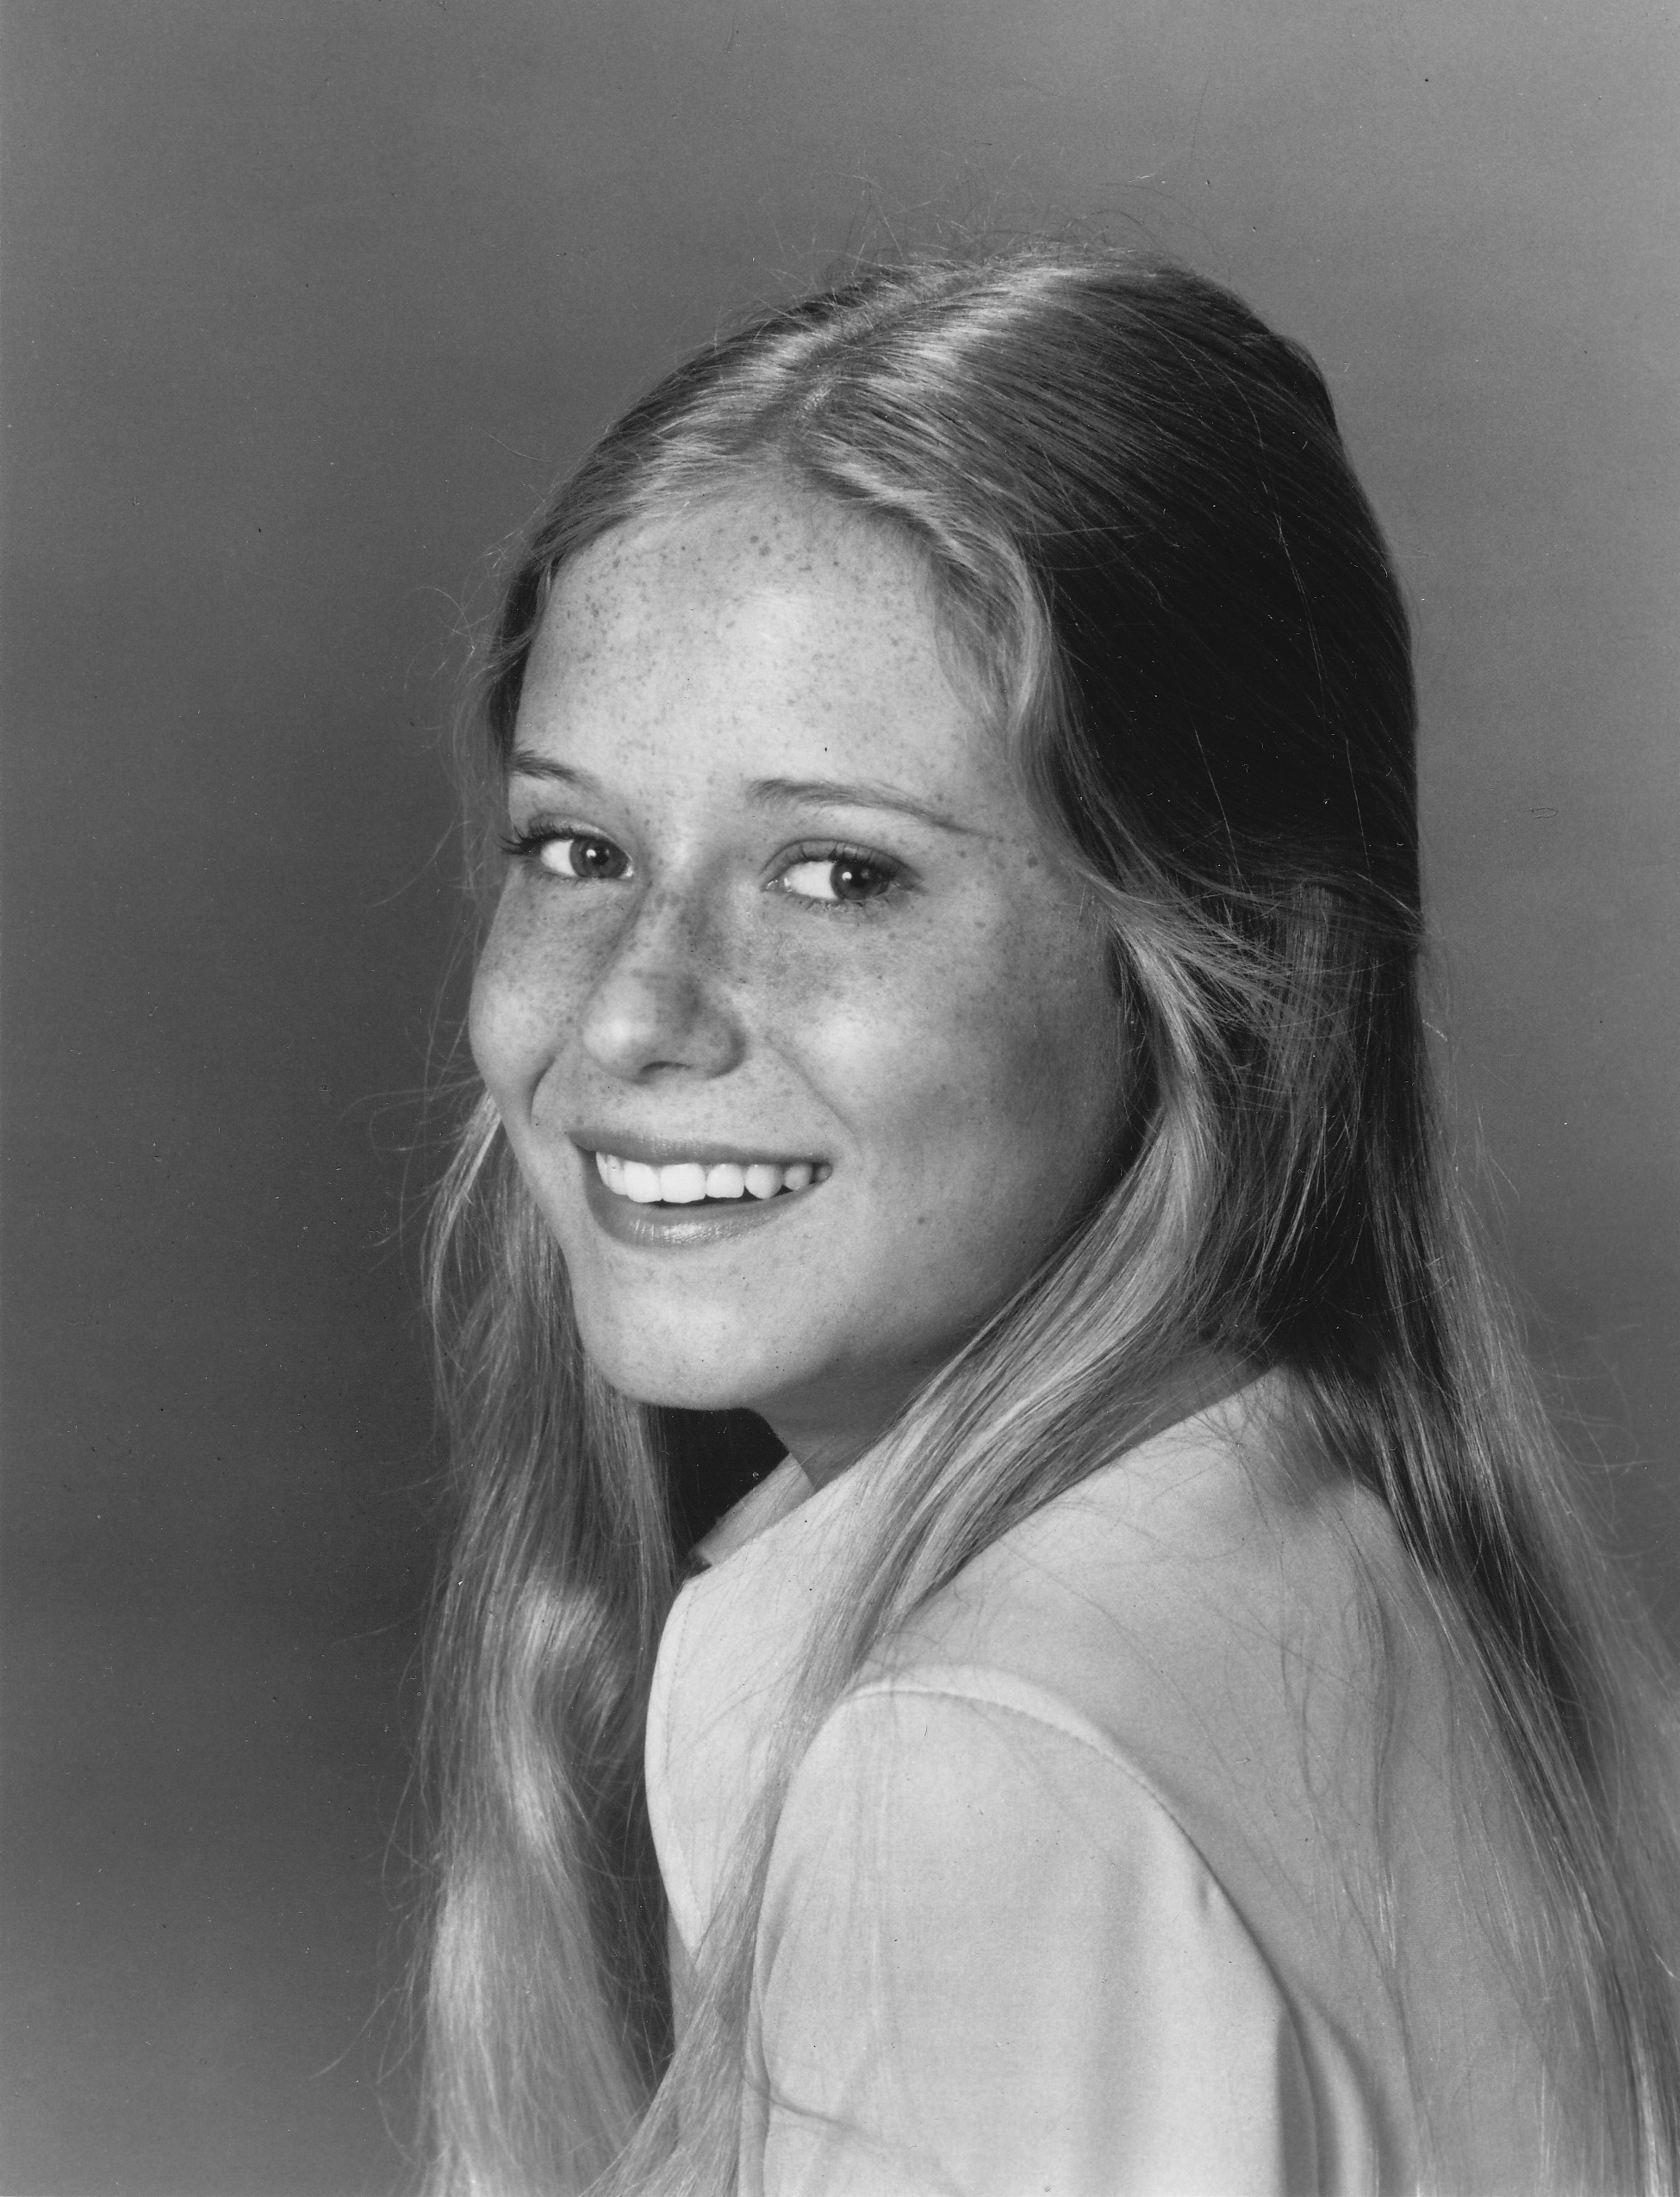 Eve Plumb nudes (87 foto and video), Sexy, Paparazzi, Instagram, legs 2019